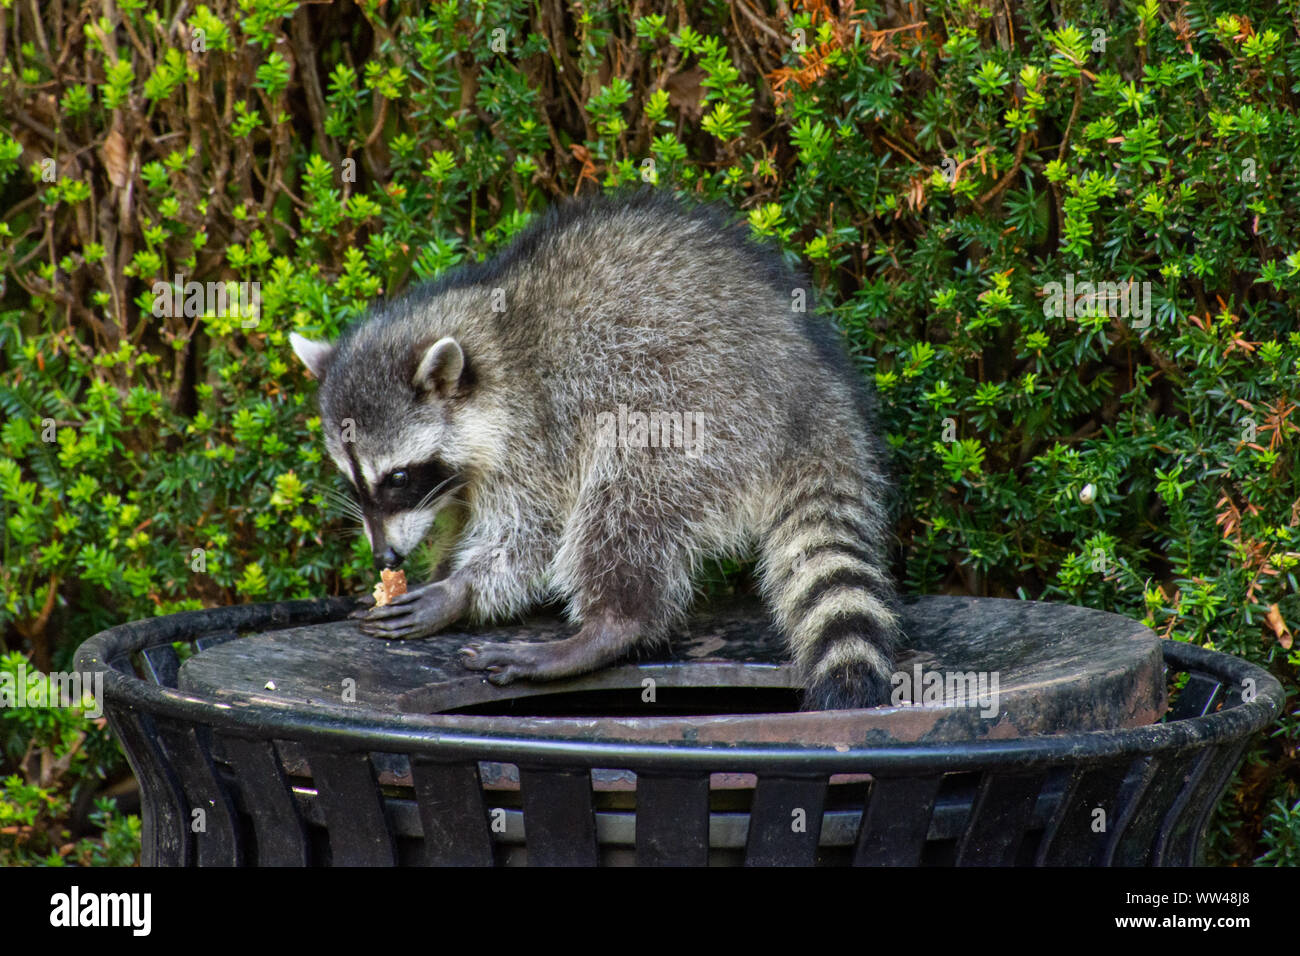 Raccoon Garbage Can High Resolution Stock Photography And Images Alamy